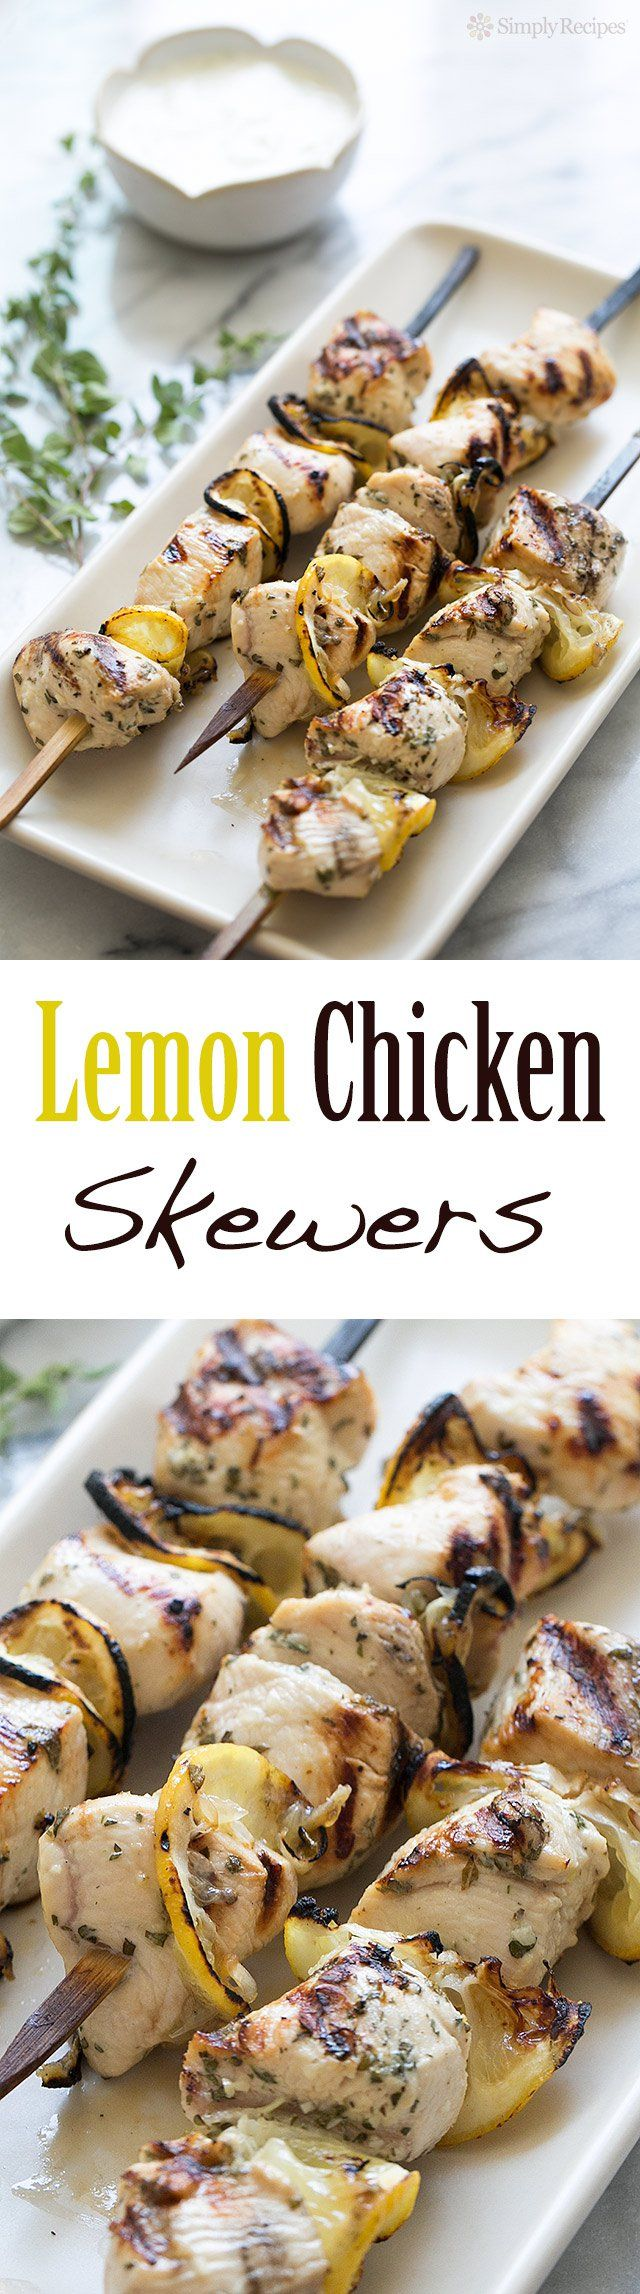 Greek Lemon Chicken Skewers with Tzatziki Sauce ~ Grilled chicken breast skewers, marinated in a yogurt lemon marinade, grilled with lemon slices, served with cucumber yogurt tzatziki sauce. Great for a summer holiday cookout! ~ SimplyRecipes.com